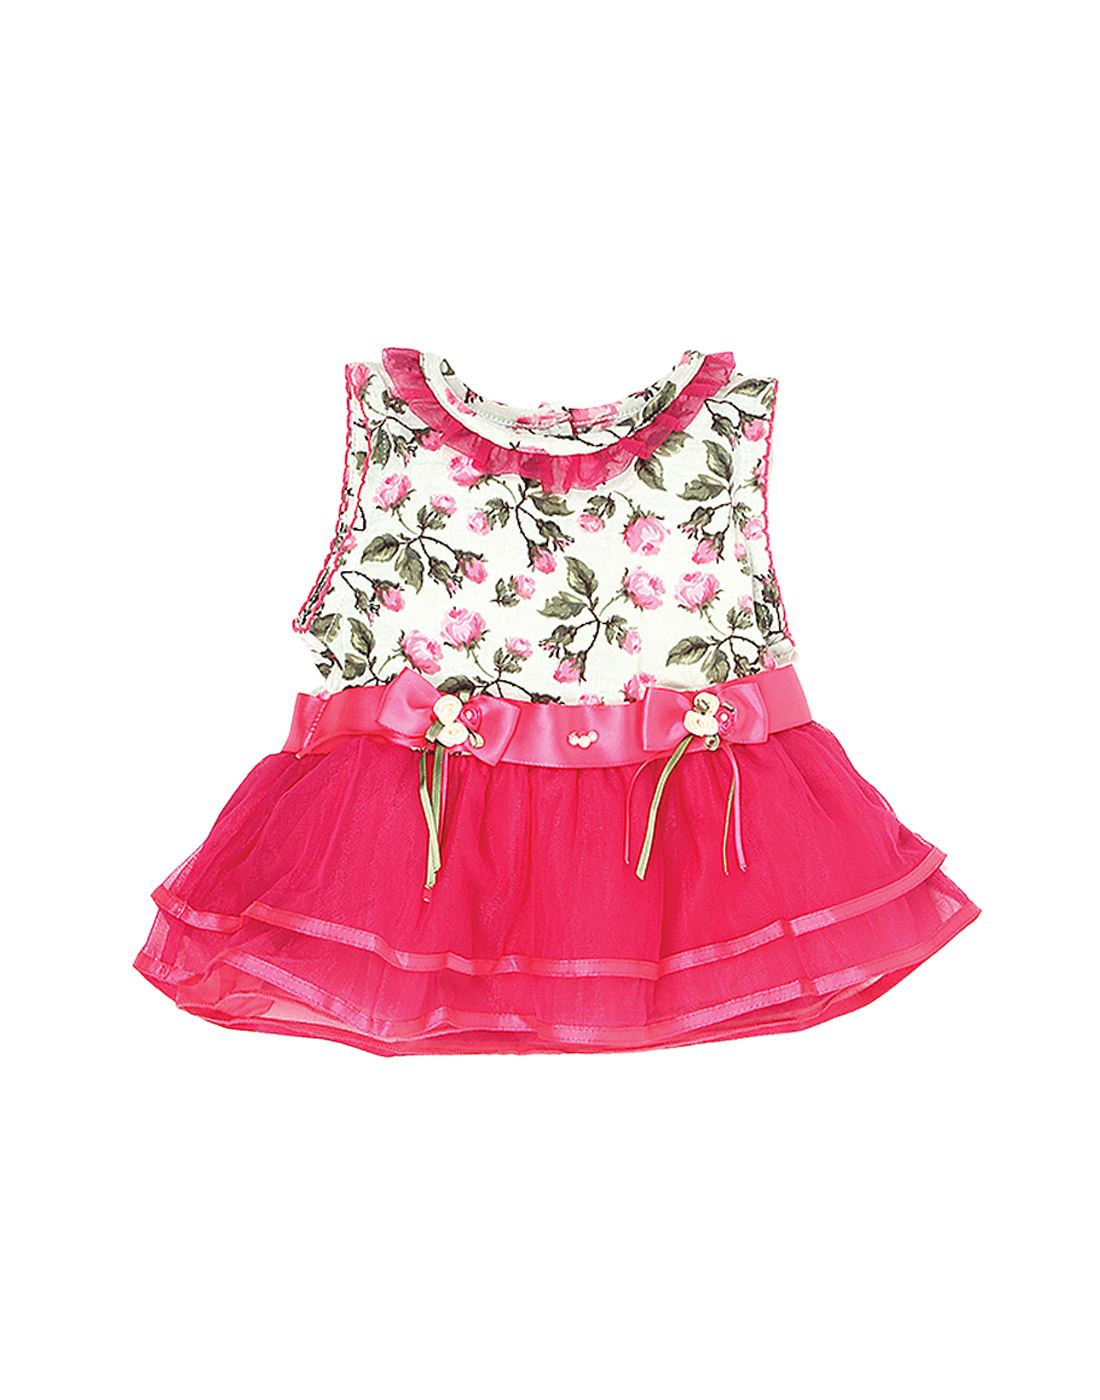 K.C.O 89 Baby Girls Party Floral Print Sleeveless Frock